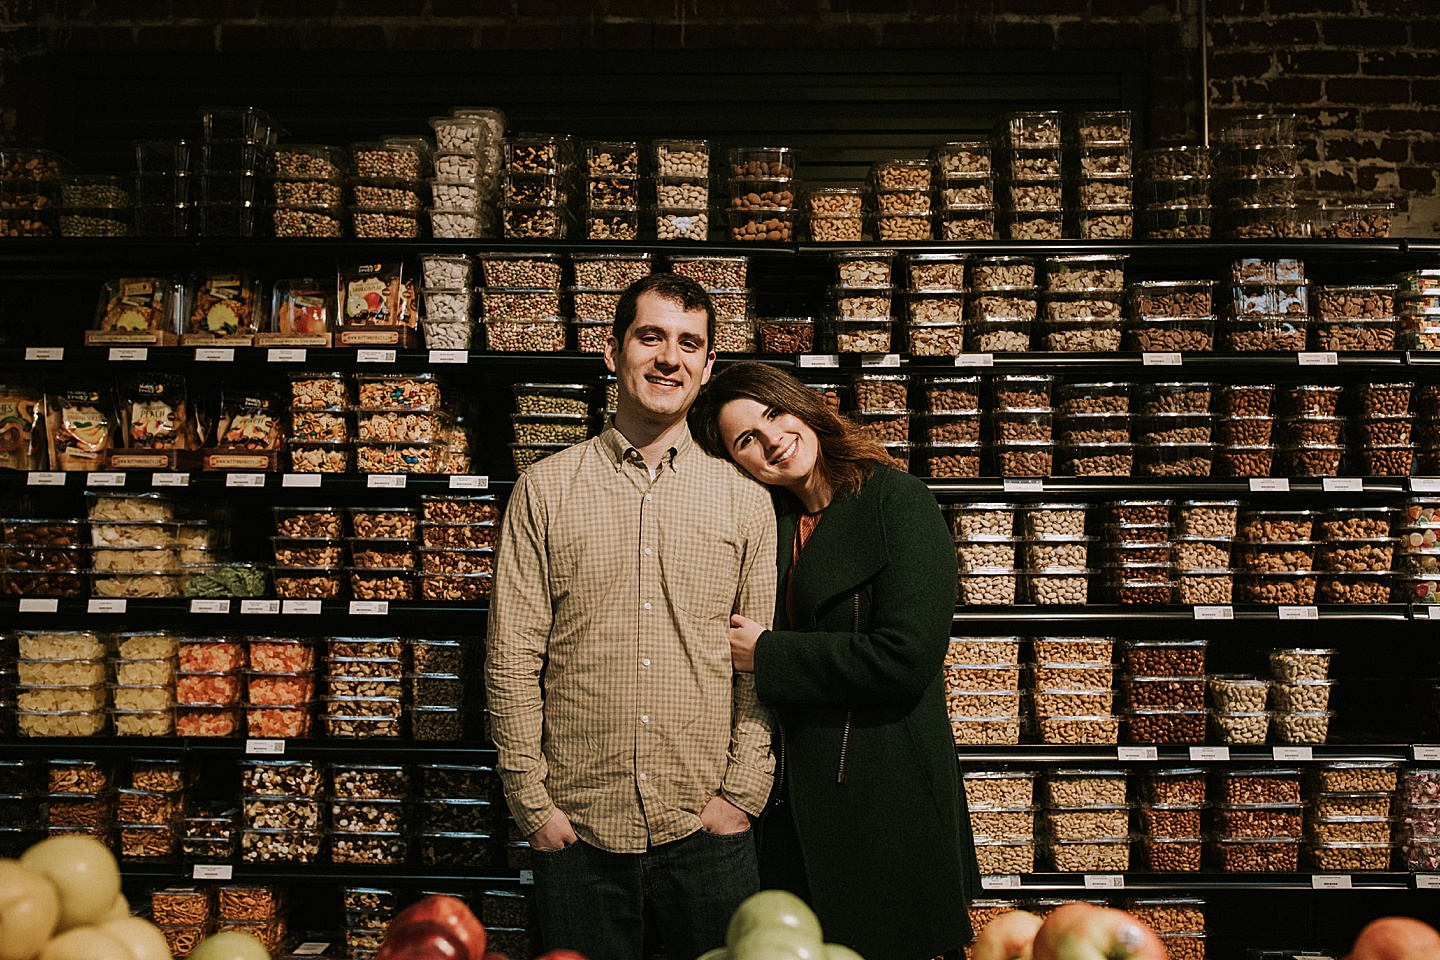 Engagement portrait in a grocery store